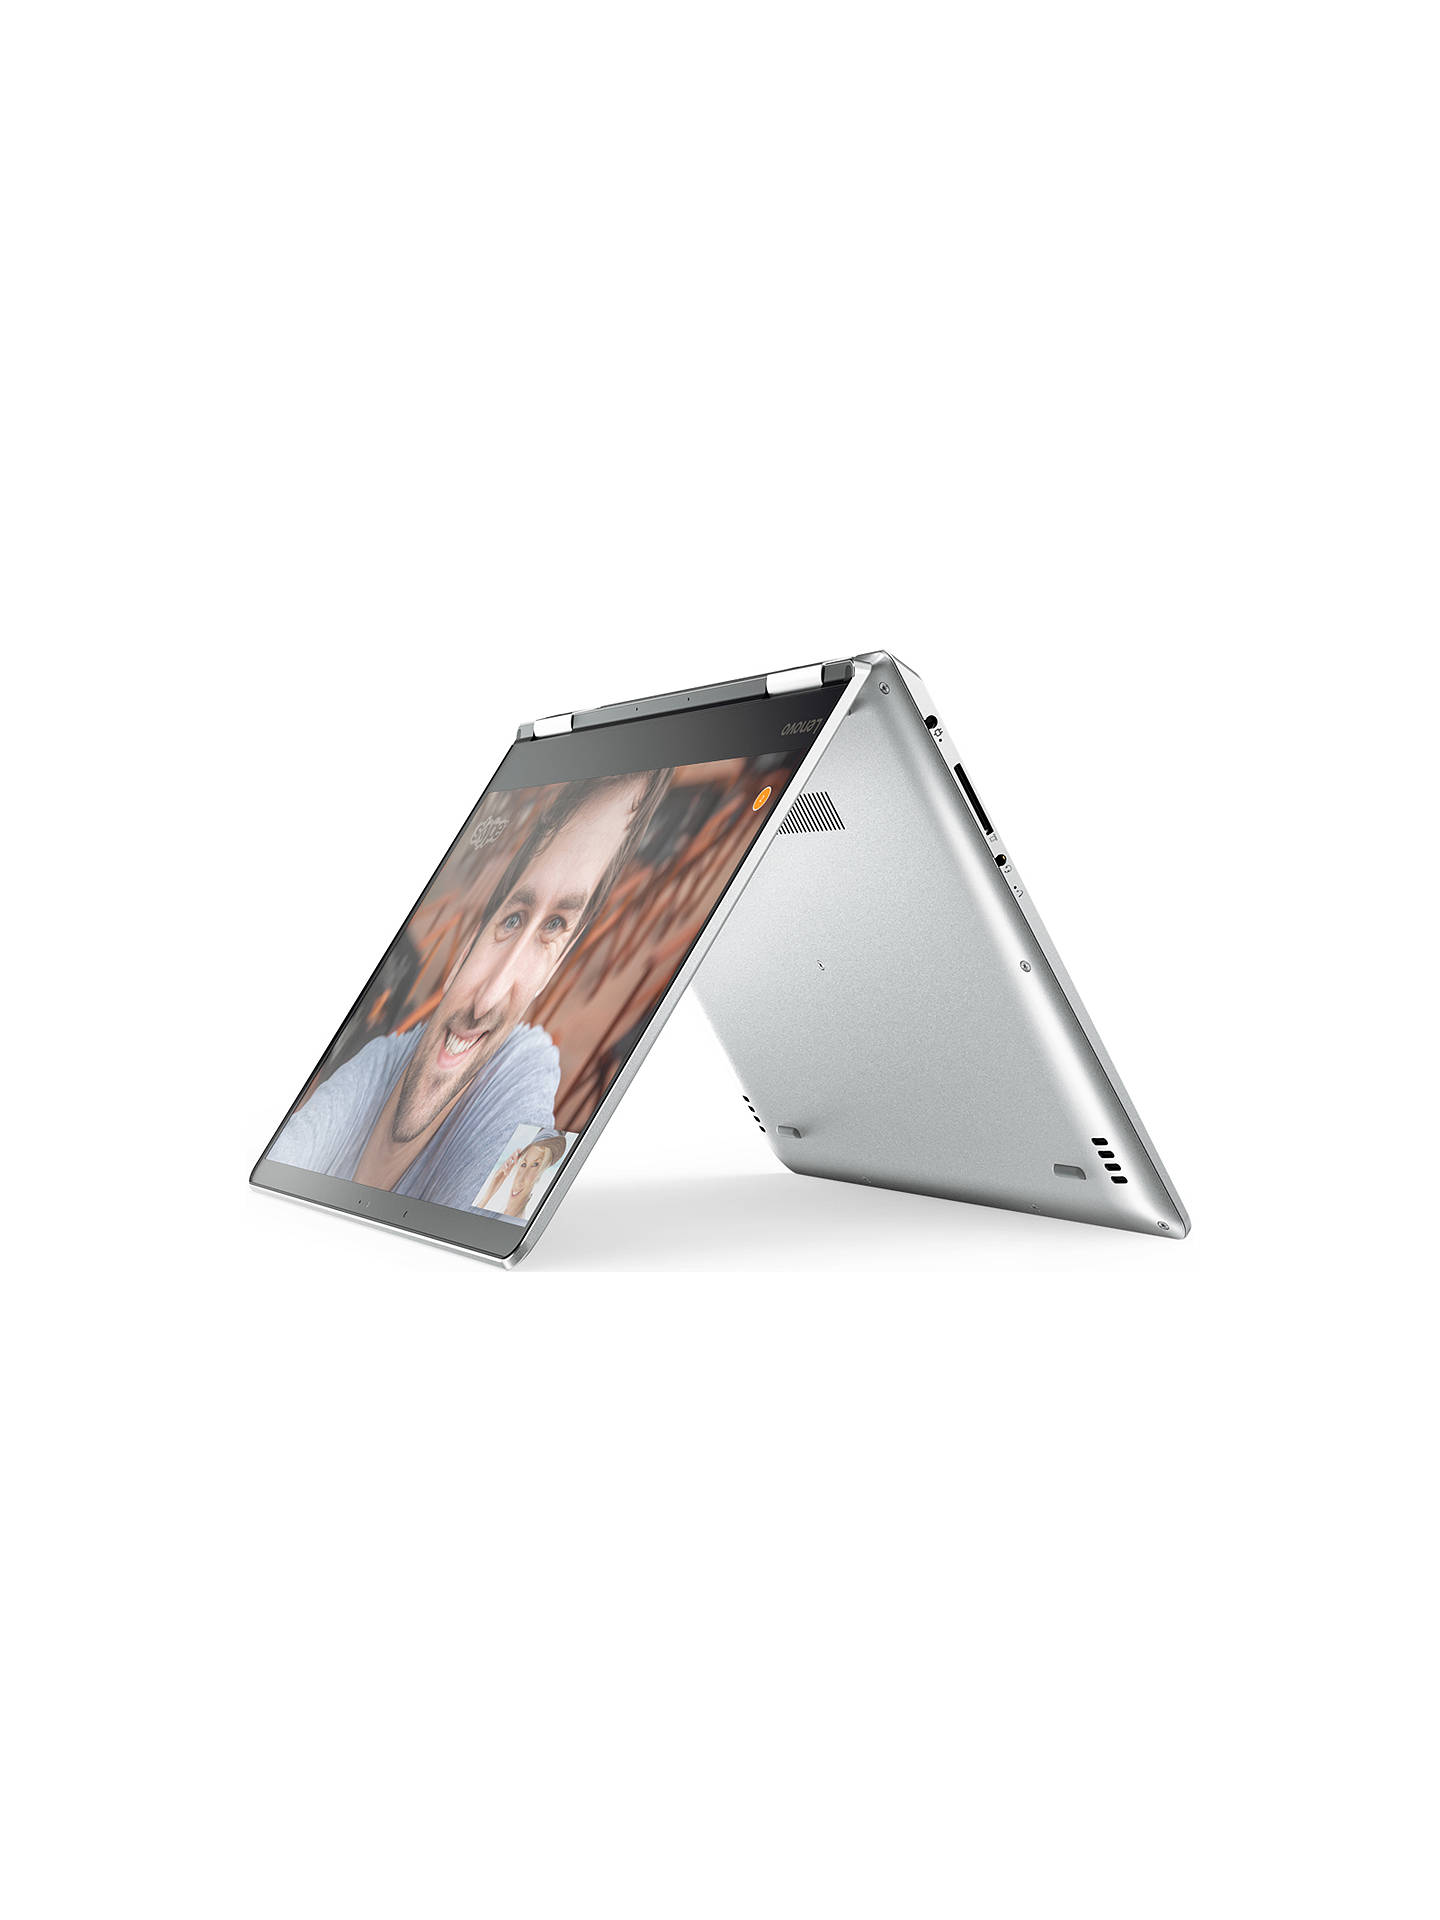 "BuyLenovo Yoga 710 Convertible Laptop, Intel Core M3, 4GB RAM, 128GB SSD, 11.6"" Full HD, Silver Online at johnlewis.com"